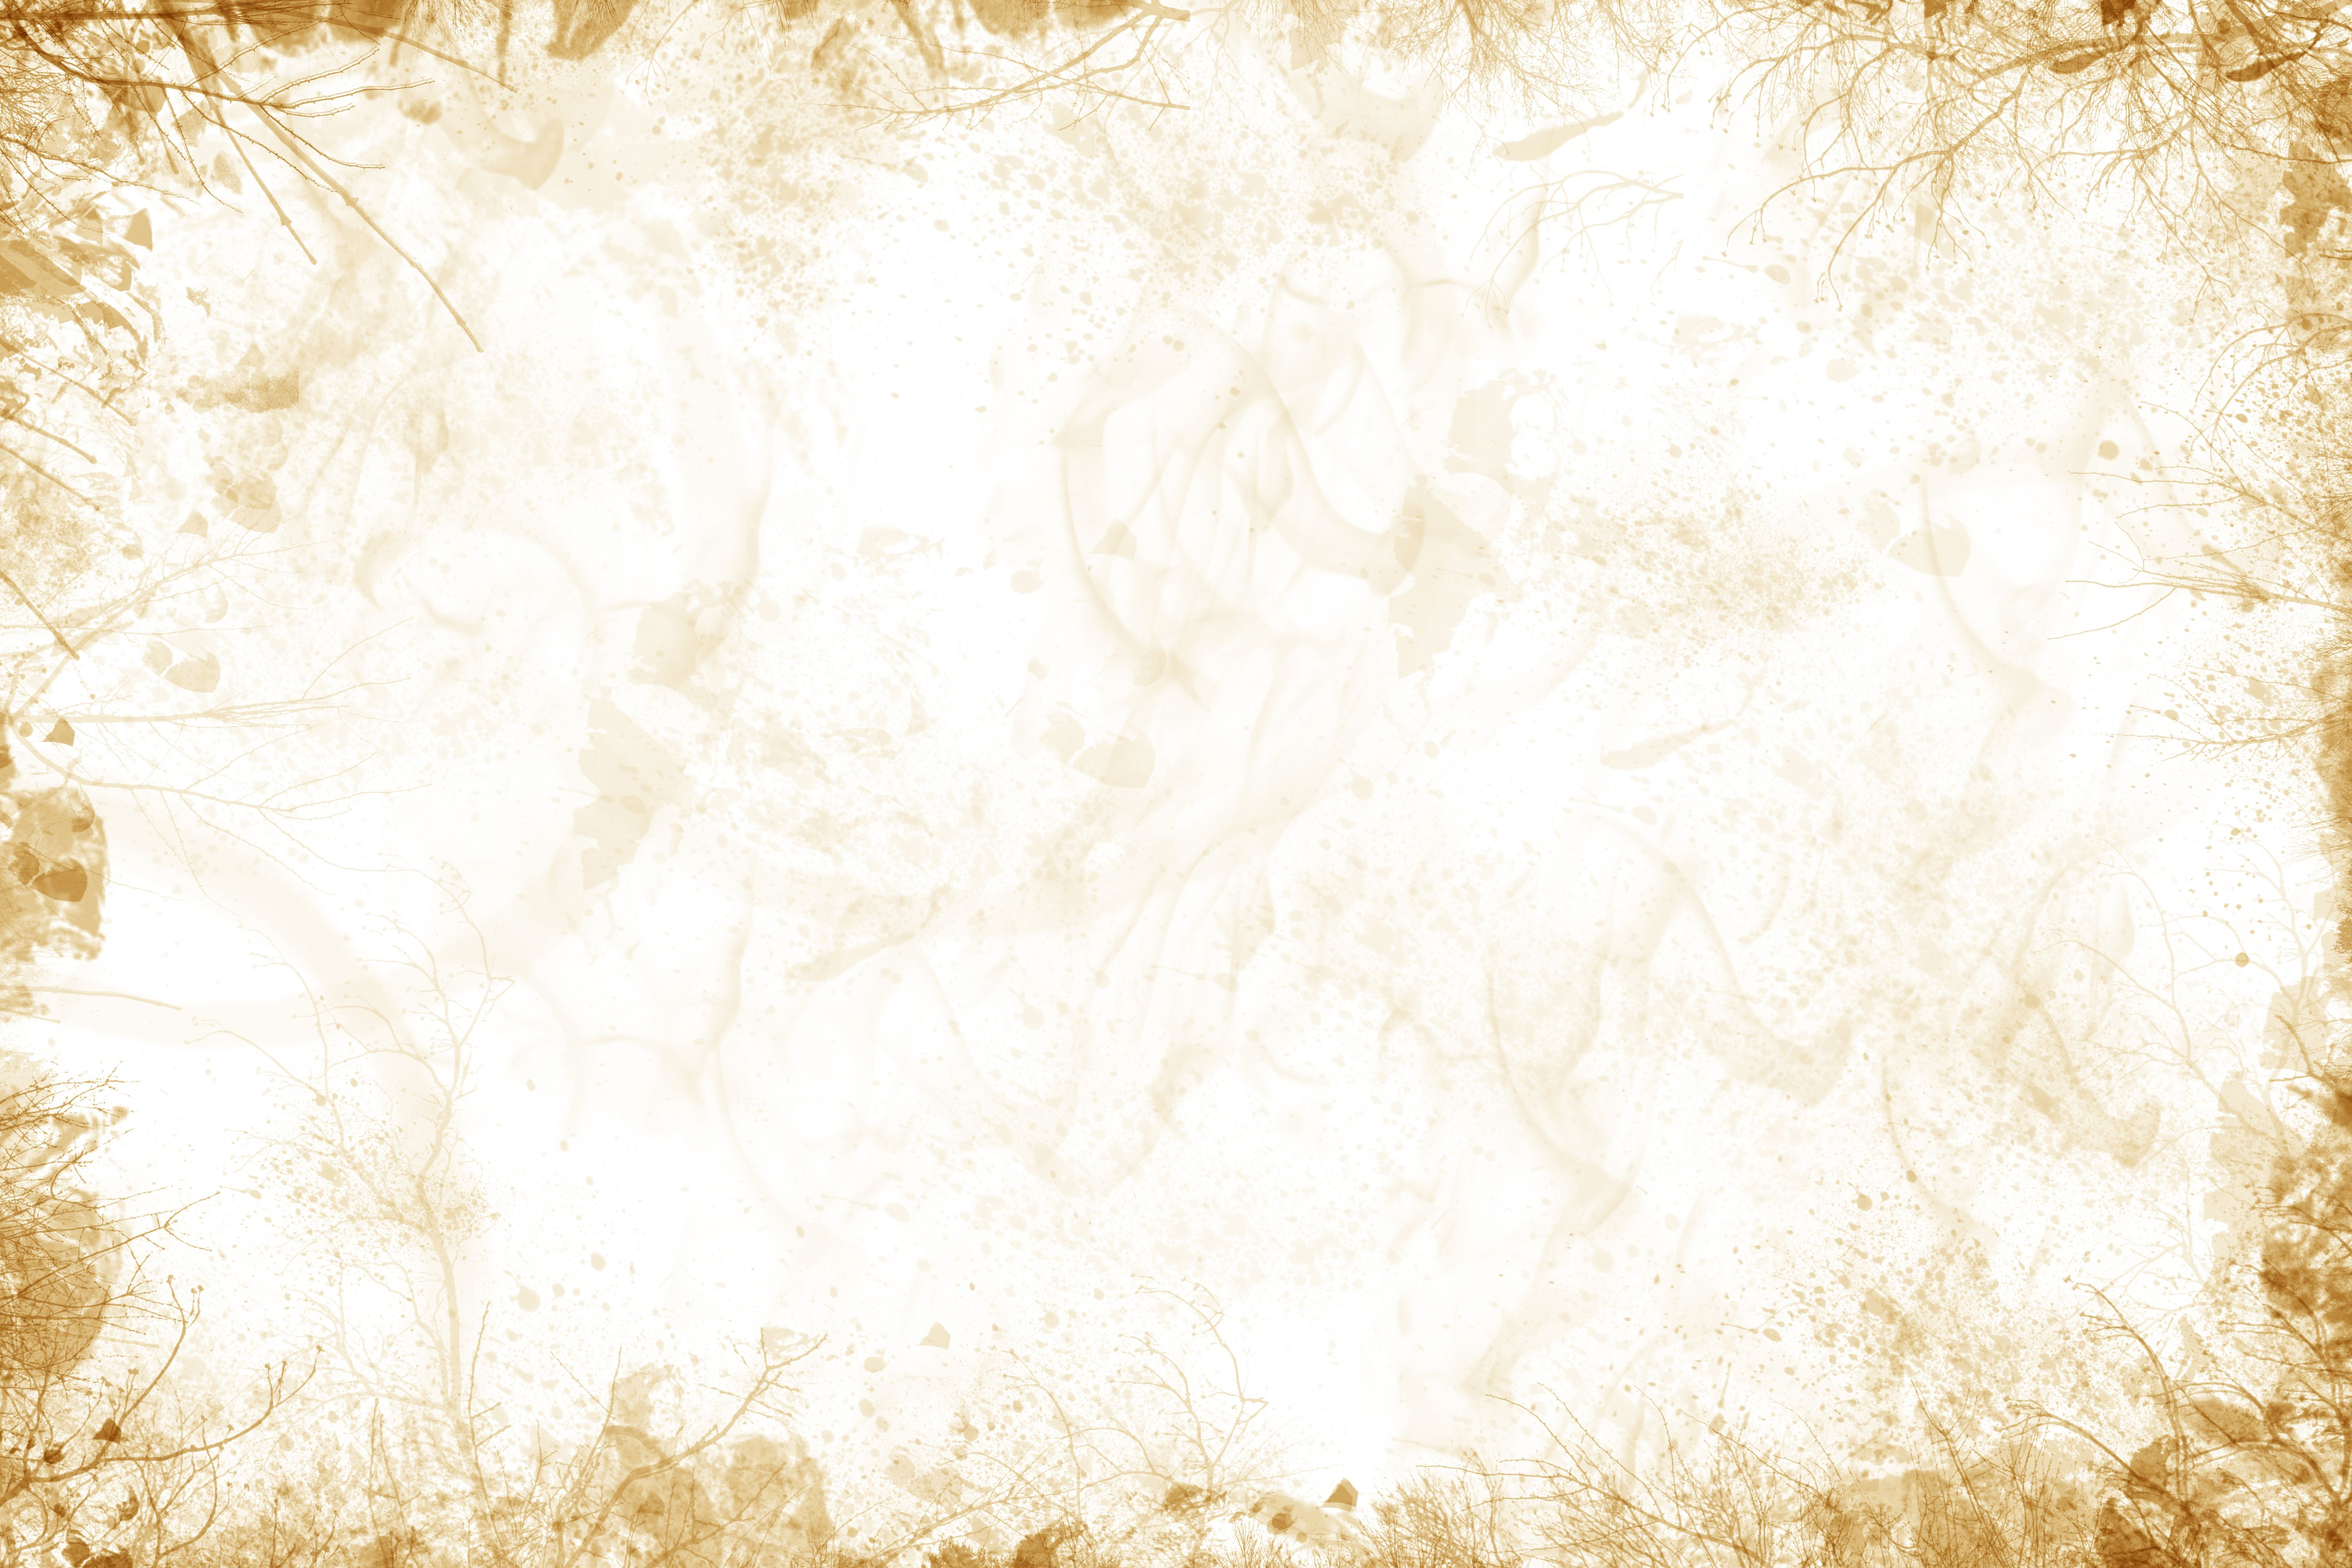 Texture Backgrounds   Funeral Prayer and Memorial Cards 5400x3600